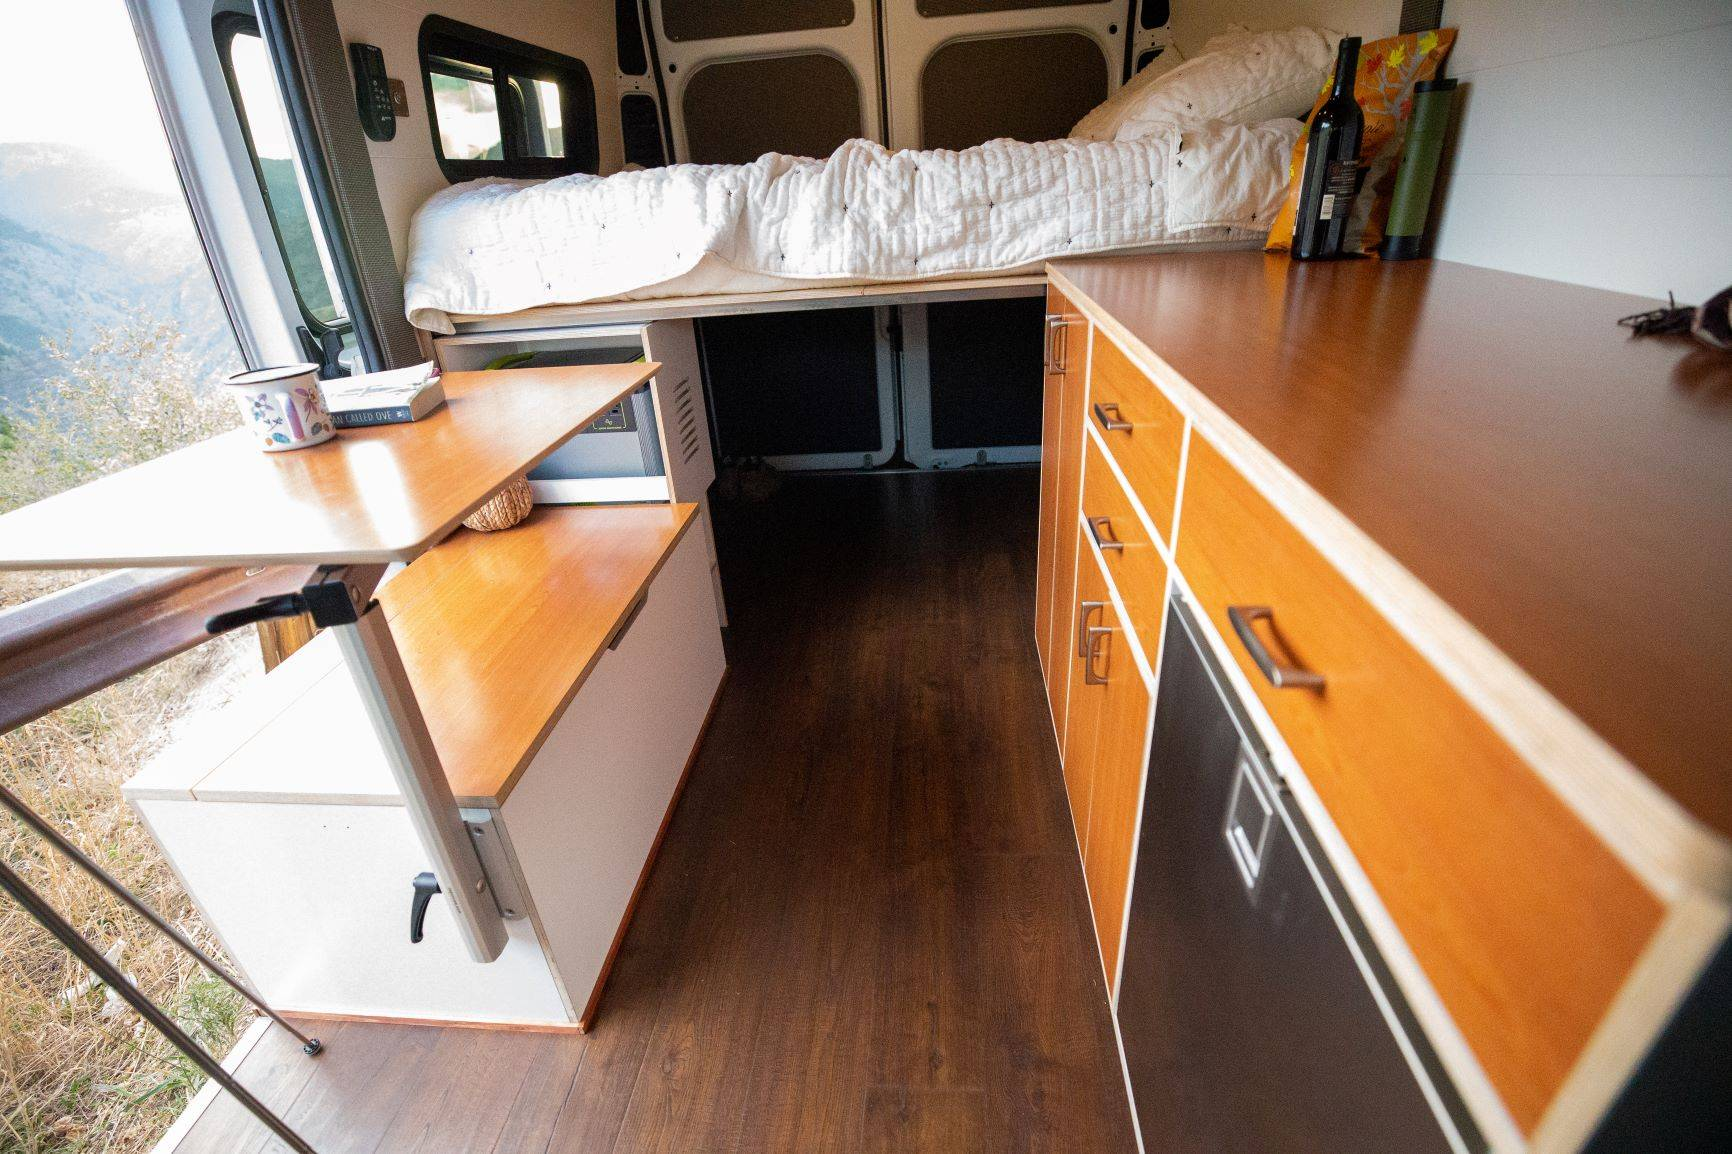 The Bivy - Sprinter 144 / ProMaster 136 Van Conversion - Interior View of Cabinets, Galley, Floor-Mount Table and Bed - The Vansmith